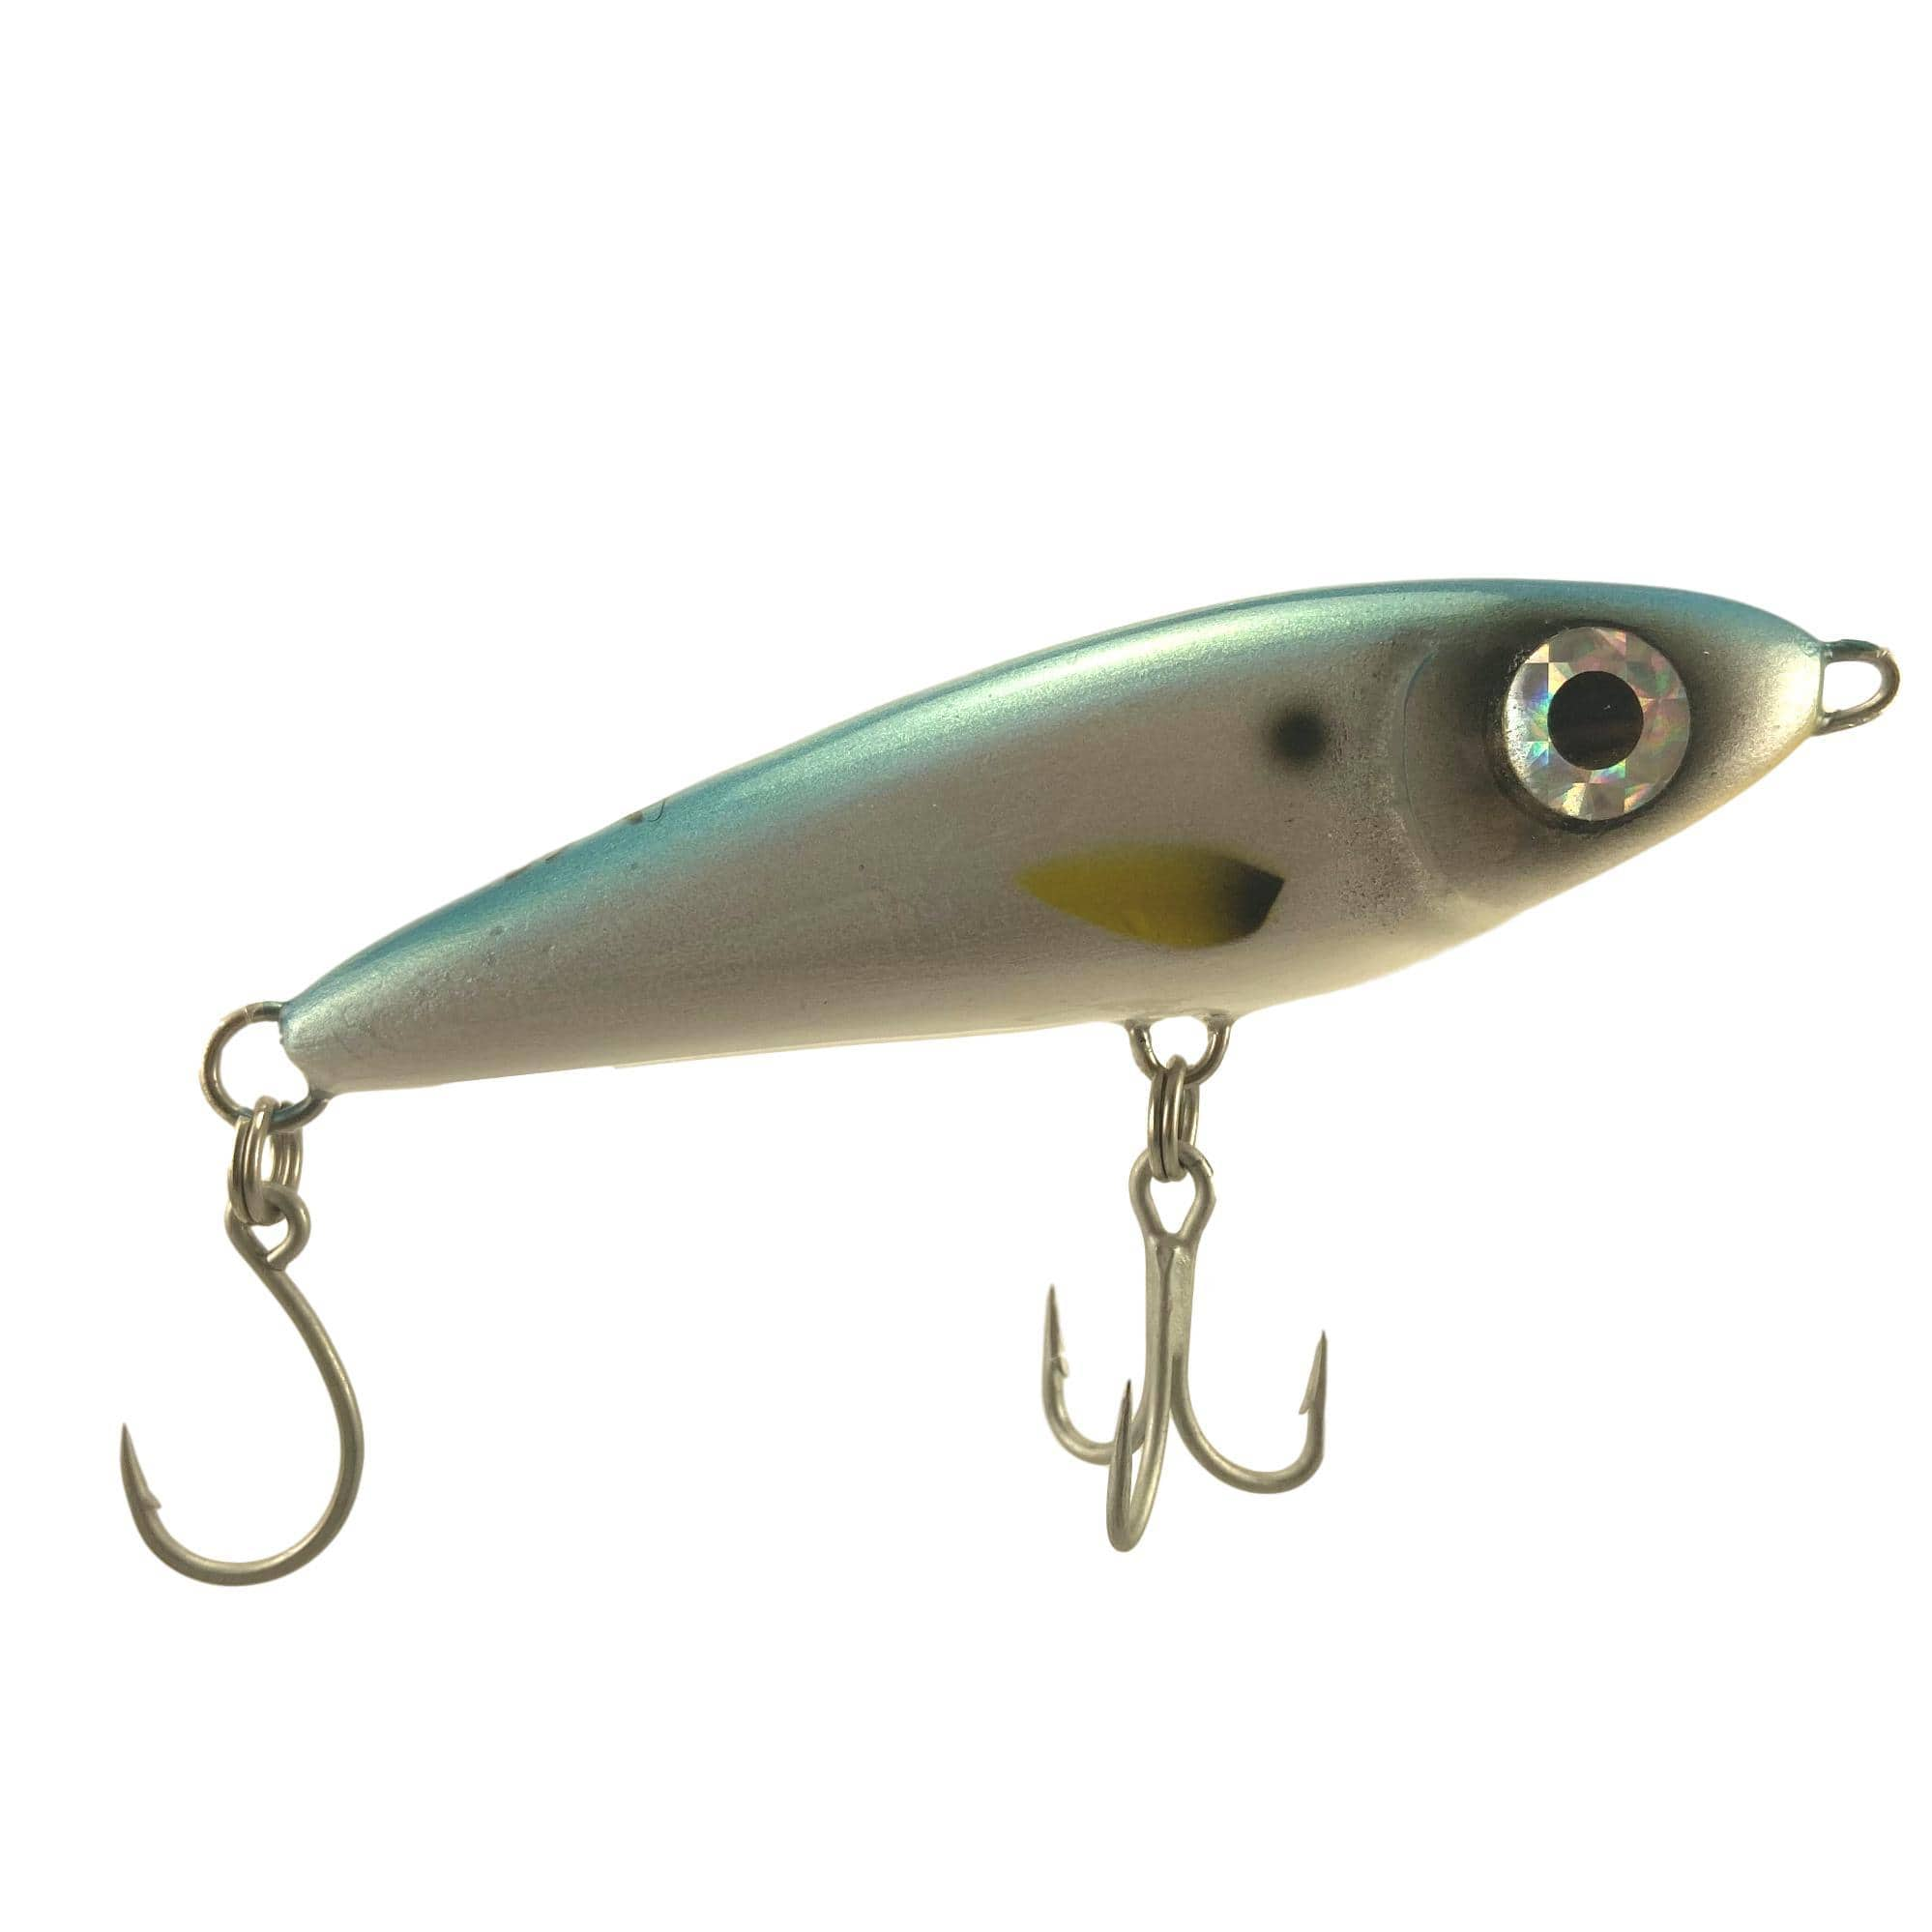 Alan's Custom Lures Mini Dart